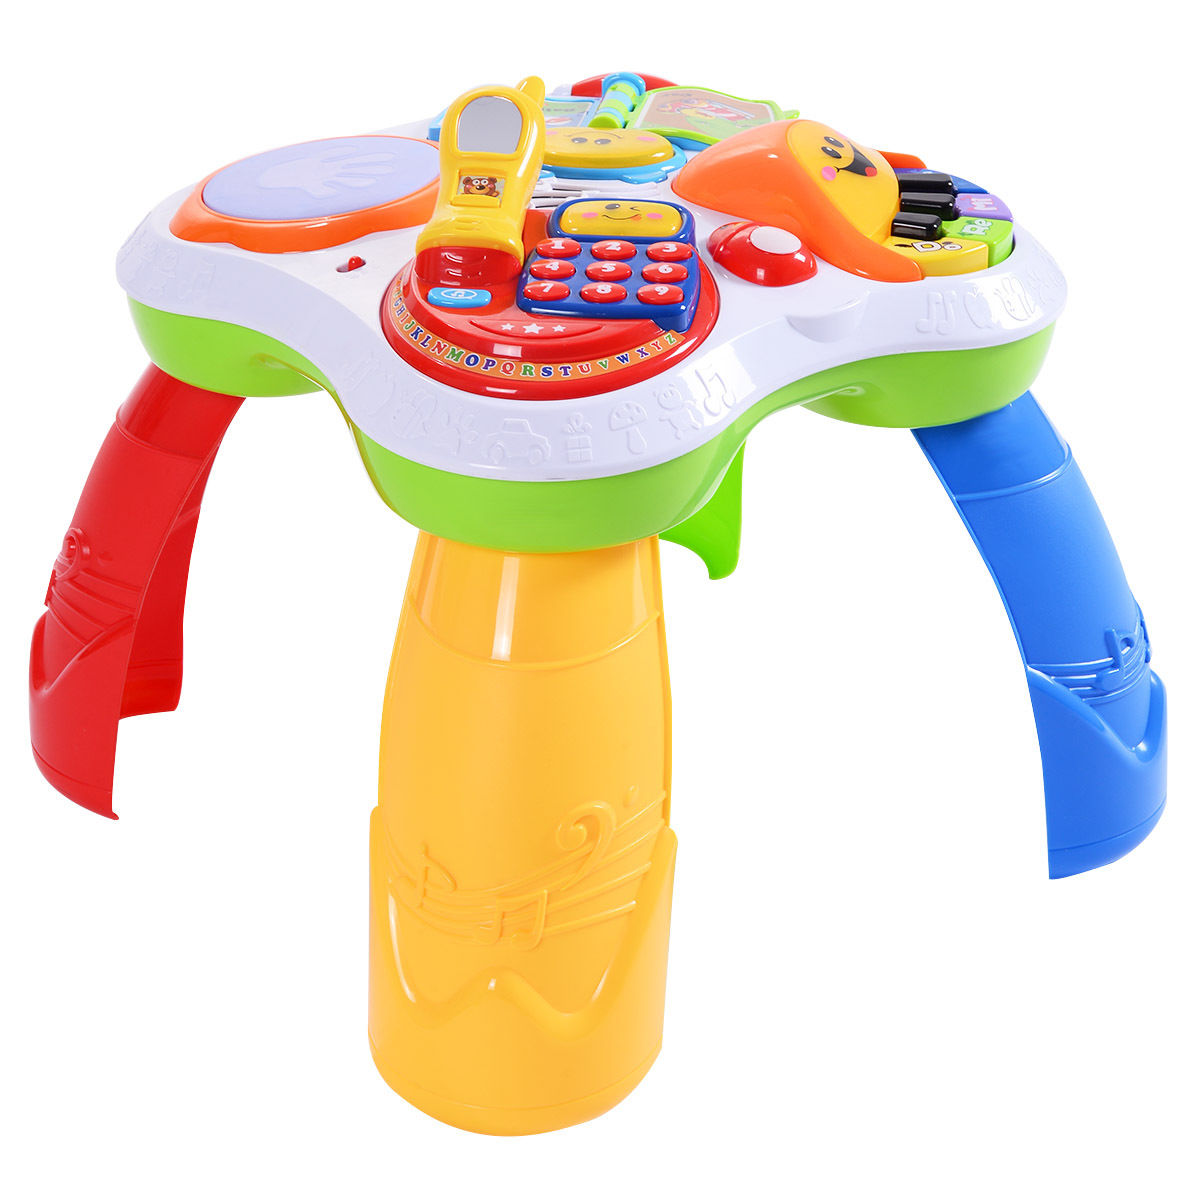 Costway Learning Table Fun Laugh And Learn Educational Toy Kids Toddler Activity Center